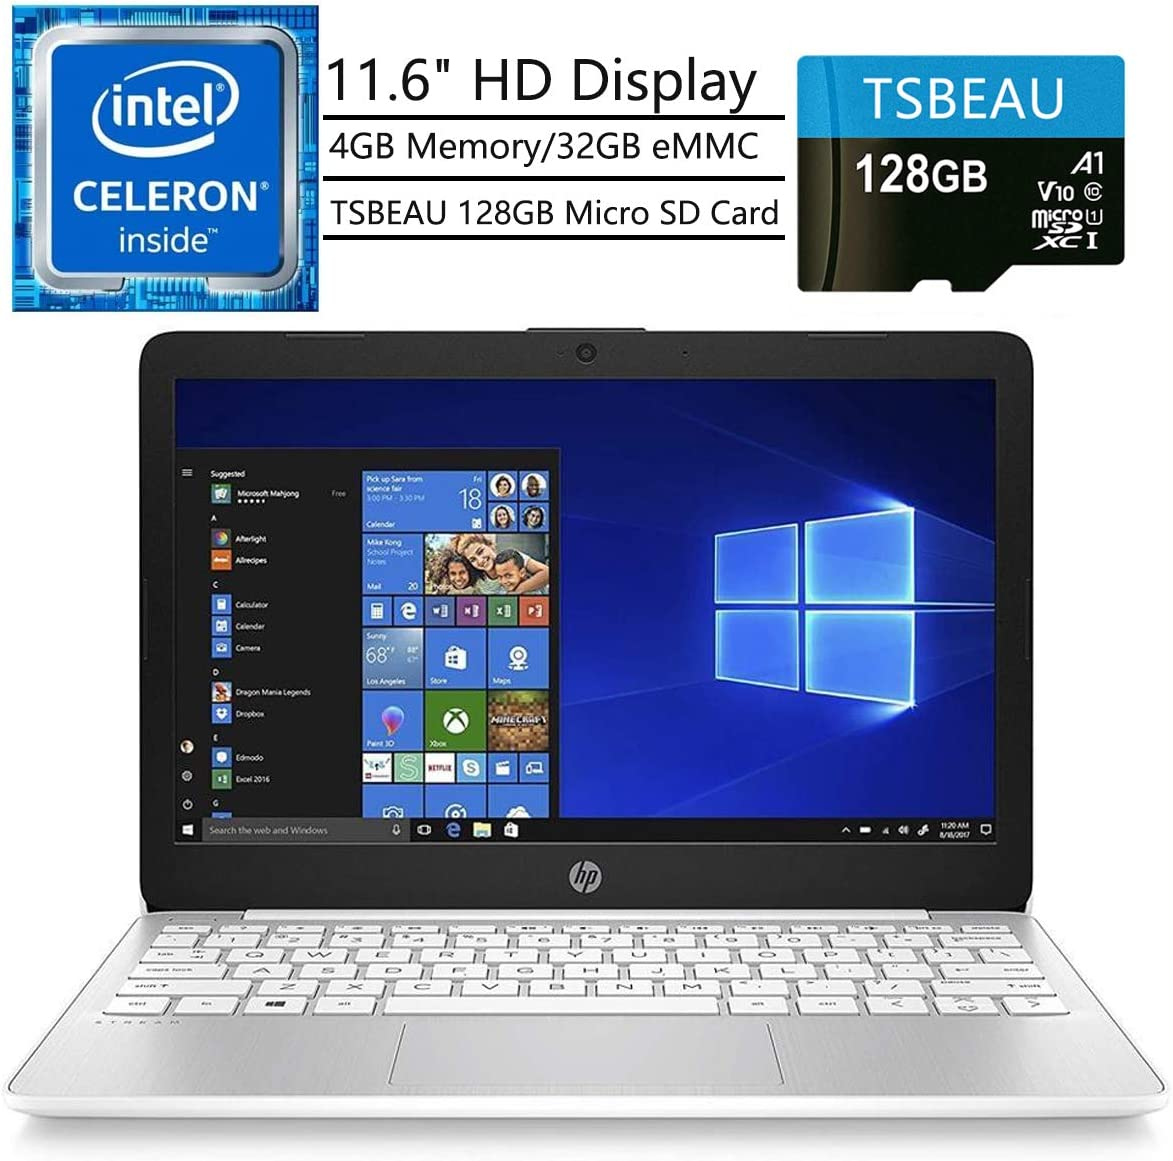 "HP Stream Laptop, 11.6"" HD Display, Intel Celeron N4000, 4 GB RAM, 32 GB eMMC, Windows 10 Home in S Mode, One Year of Microsoft 365, Bundled with TSBEAU 128 GB Micro SD Card"